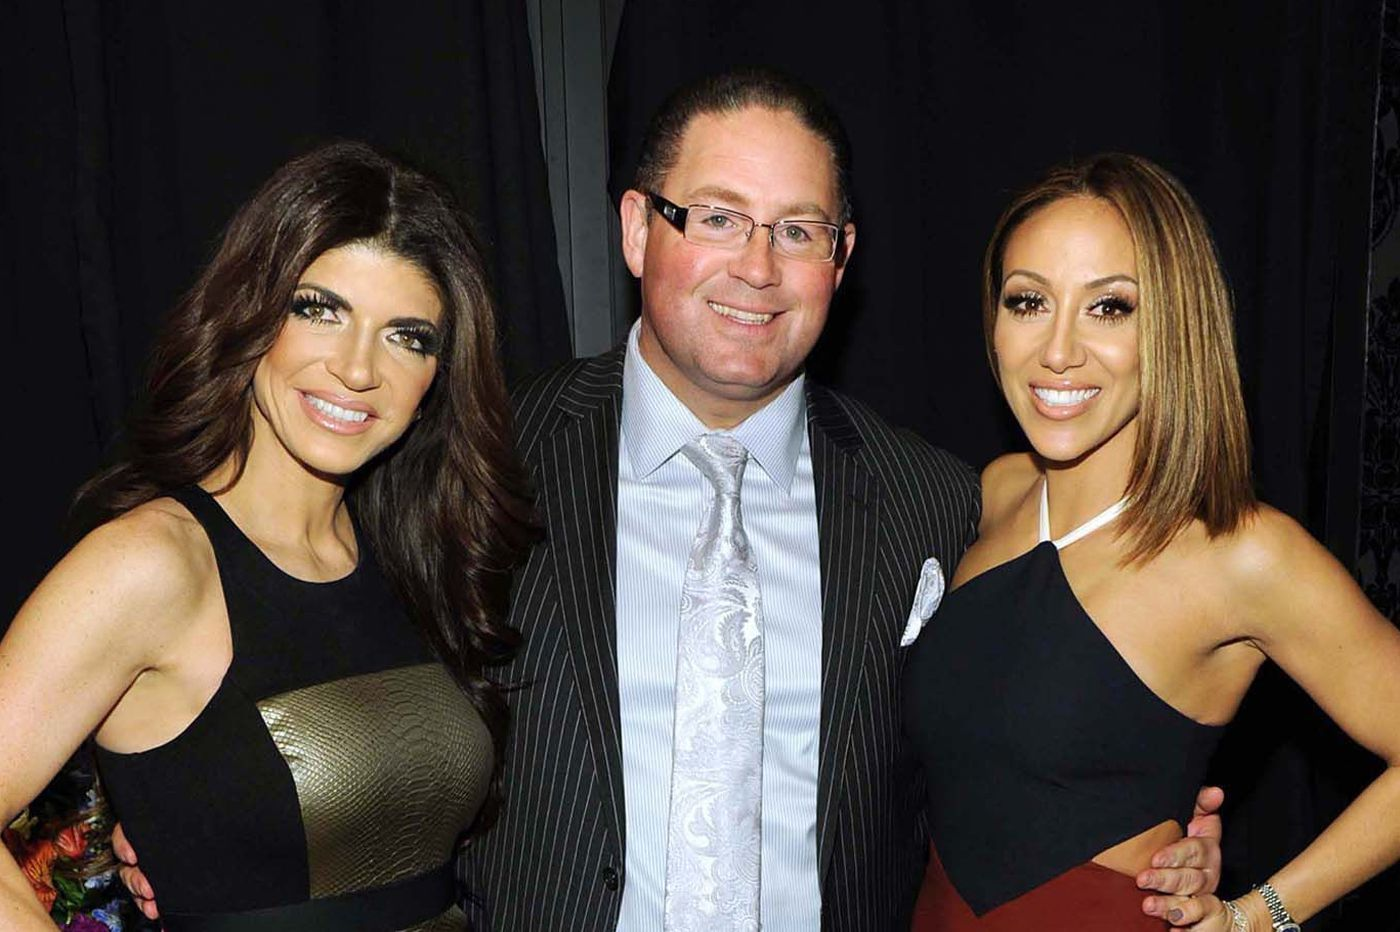 Teresa Giudice of 'Real Housewives of New Jersey' has needs. This Atlantic City lawyer is there to meet them.